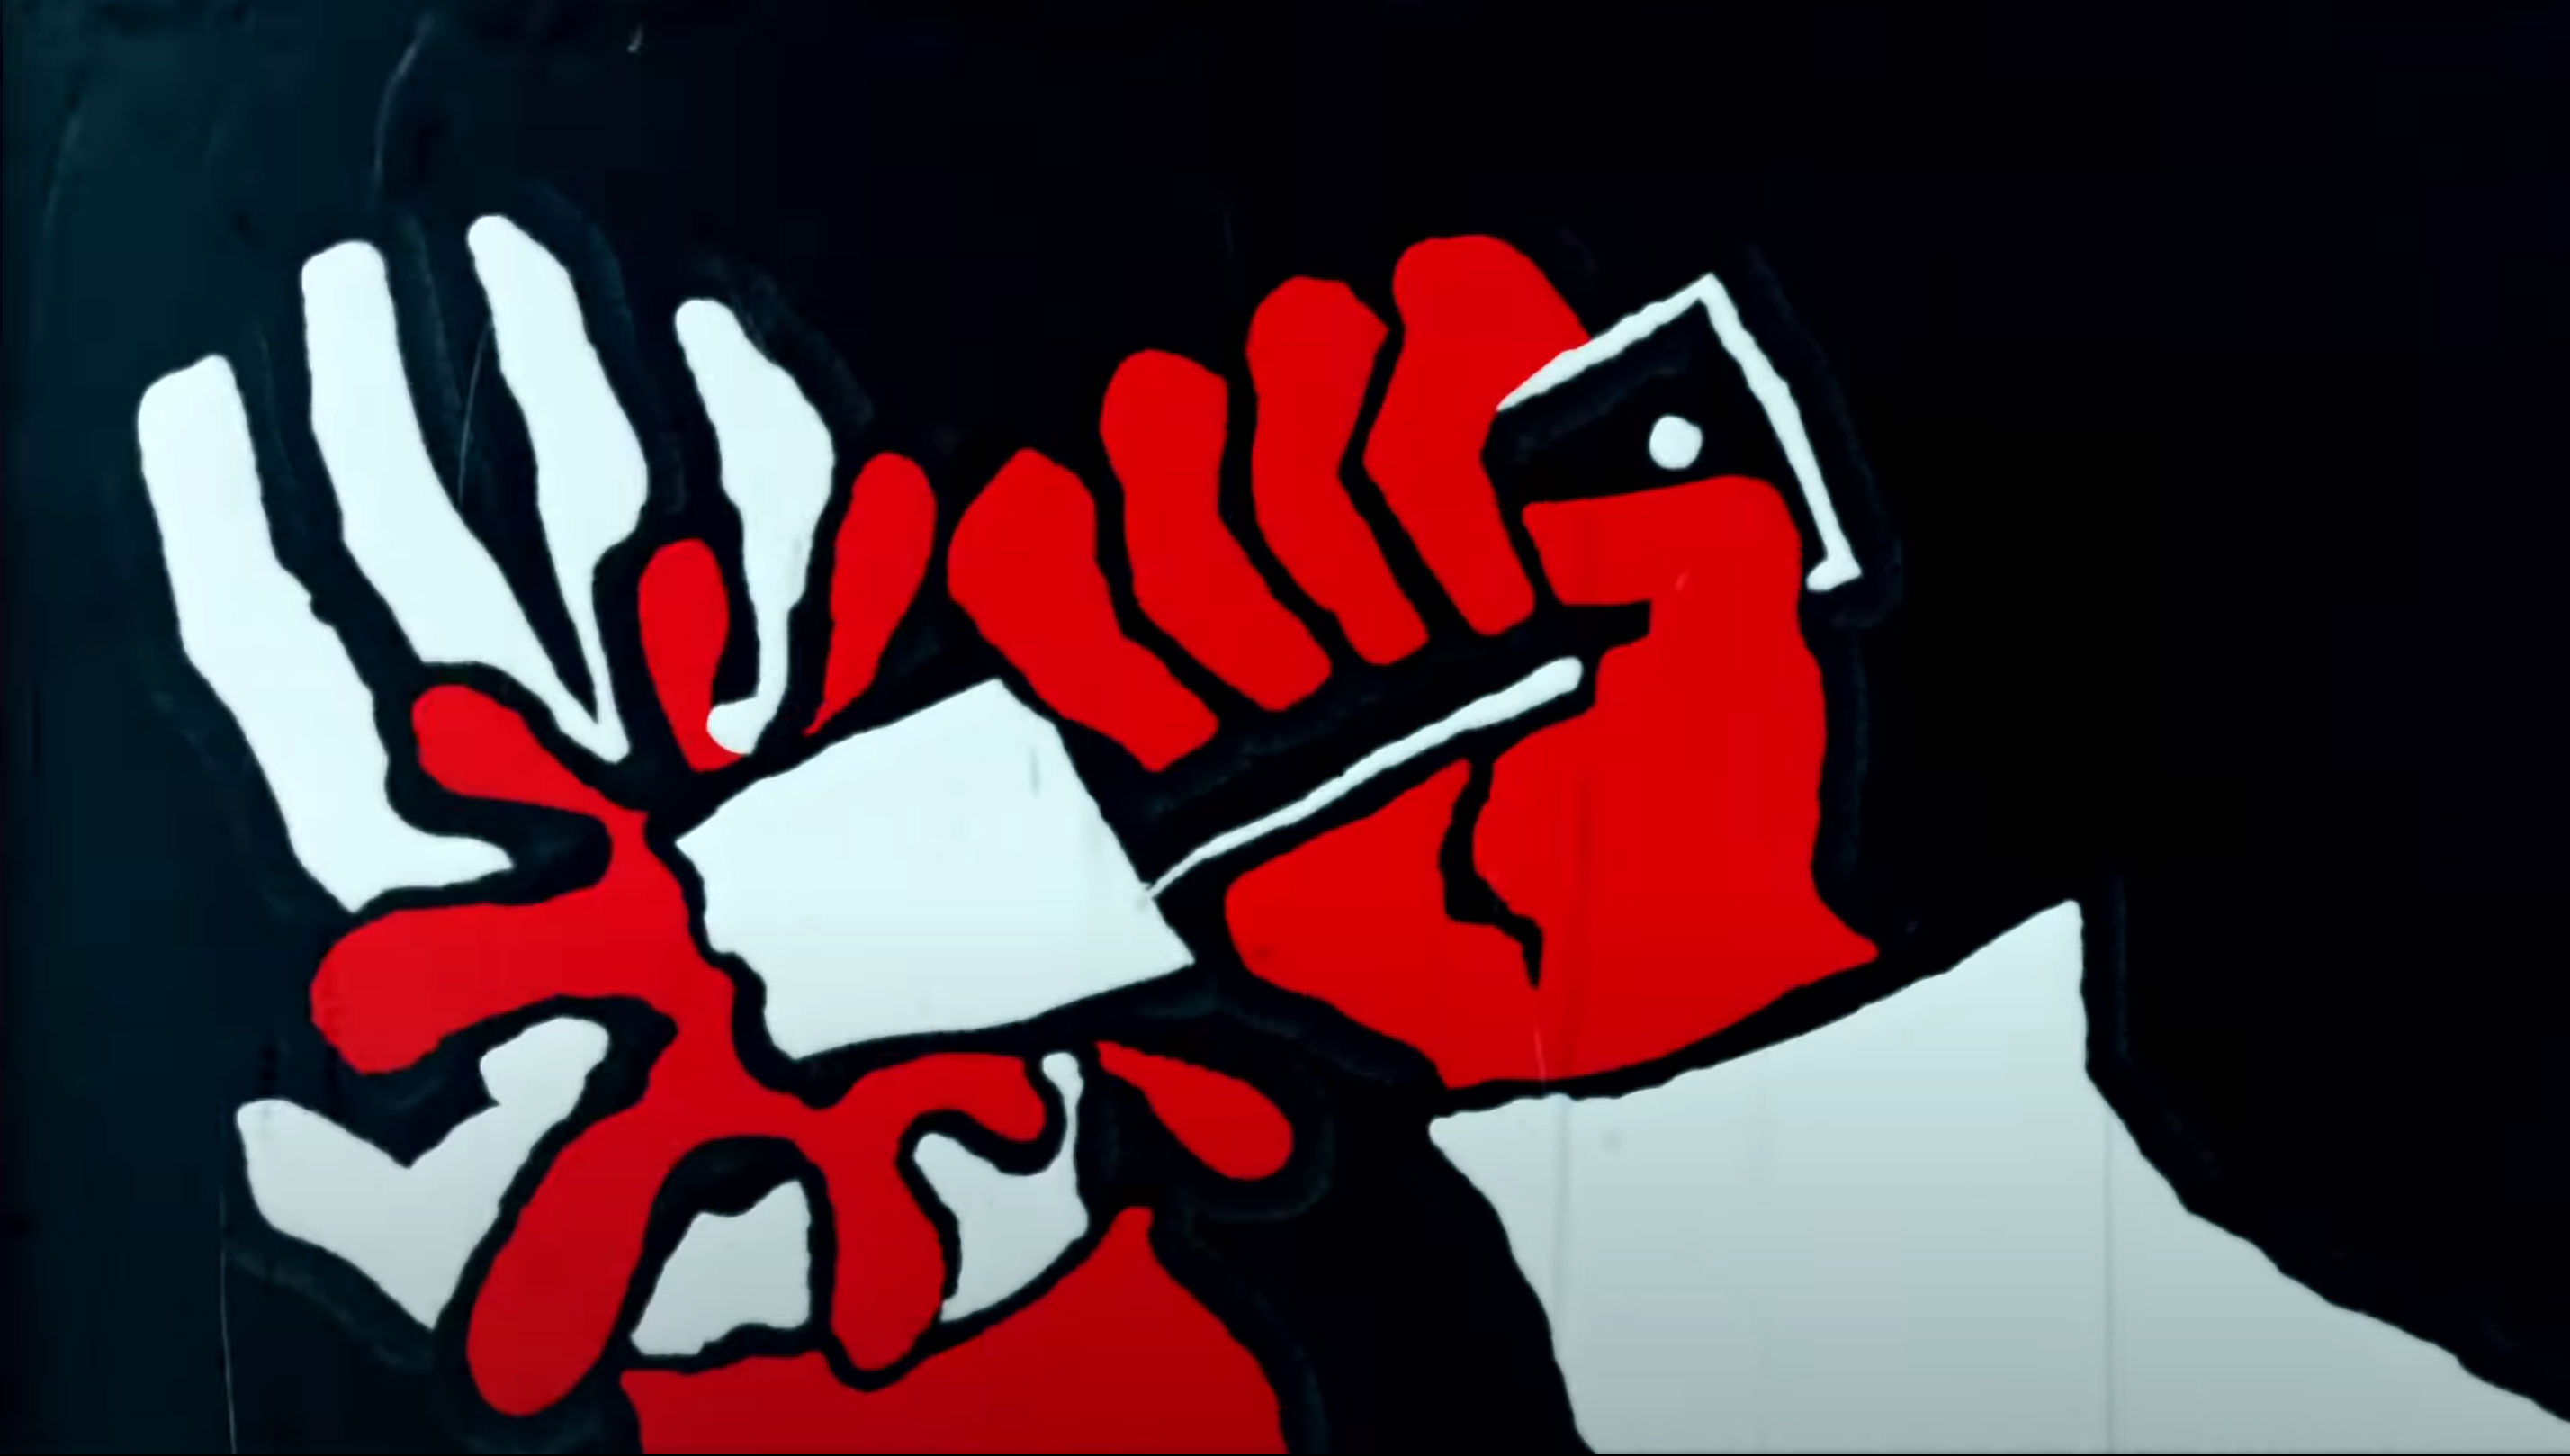 The White Stripes Let's Shake Hands Music Video by Wartella | STASH MAGAZINE